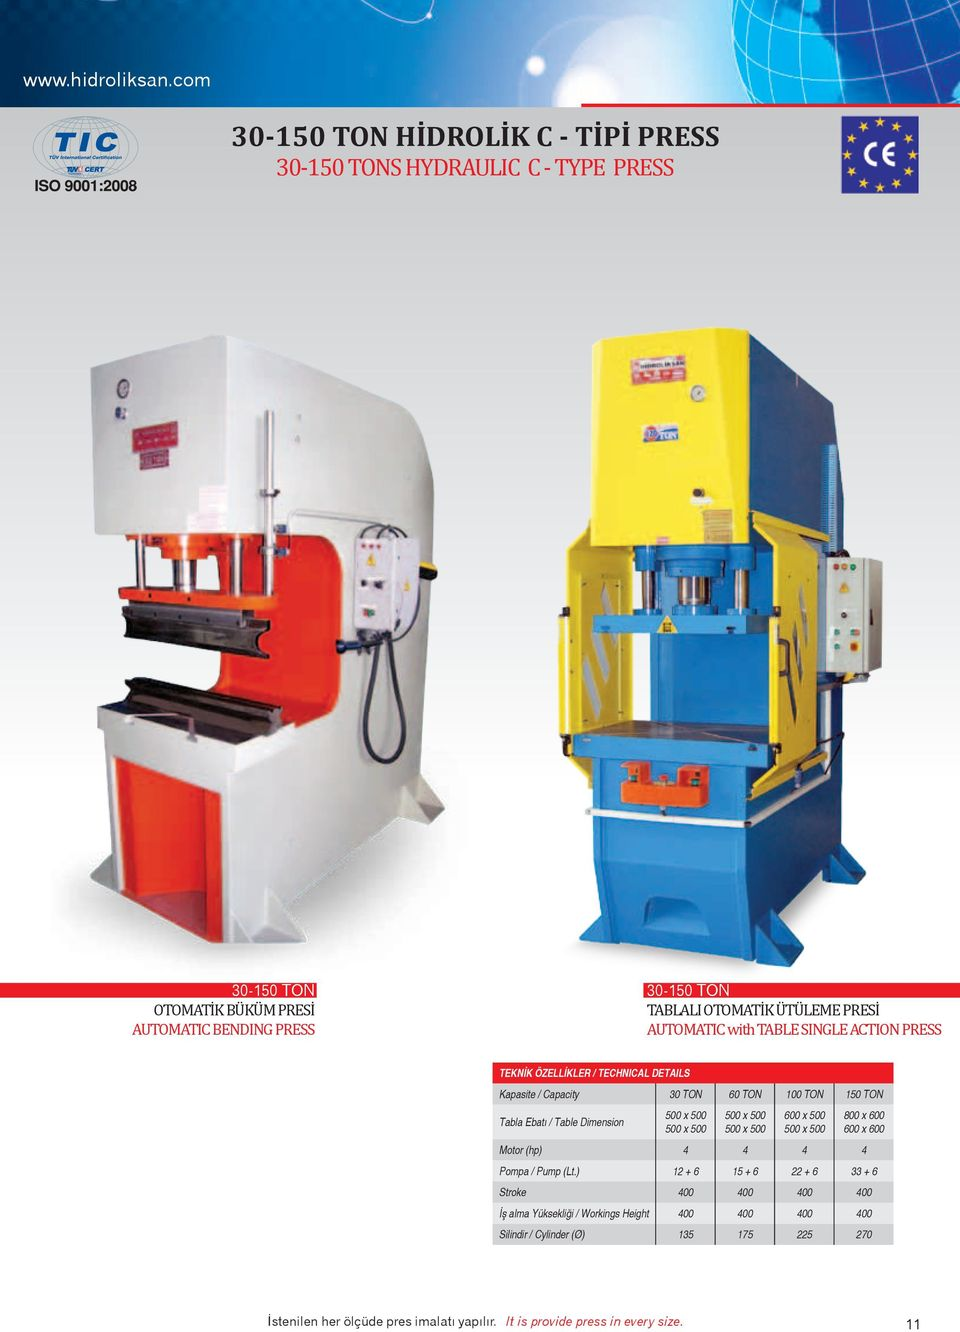 PRESİ AUTOMATIC with TABLE SINGLE ACTION PRESS TEKNİK ÖZELLİKLER / TECHNICAL DETAILS Kapasite / Capacity 30 TON 60 TON 100 TON 150 TON Tabla Ebatı / Table Dimension 500 x